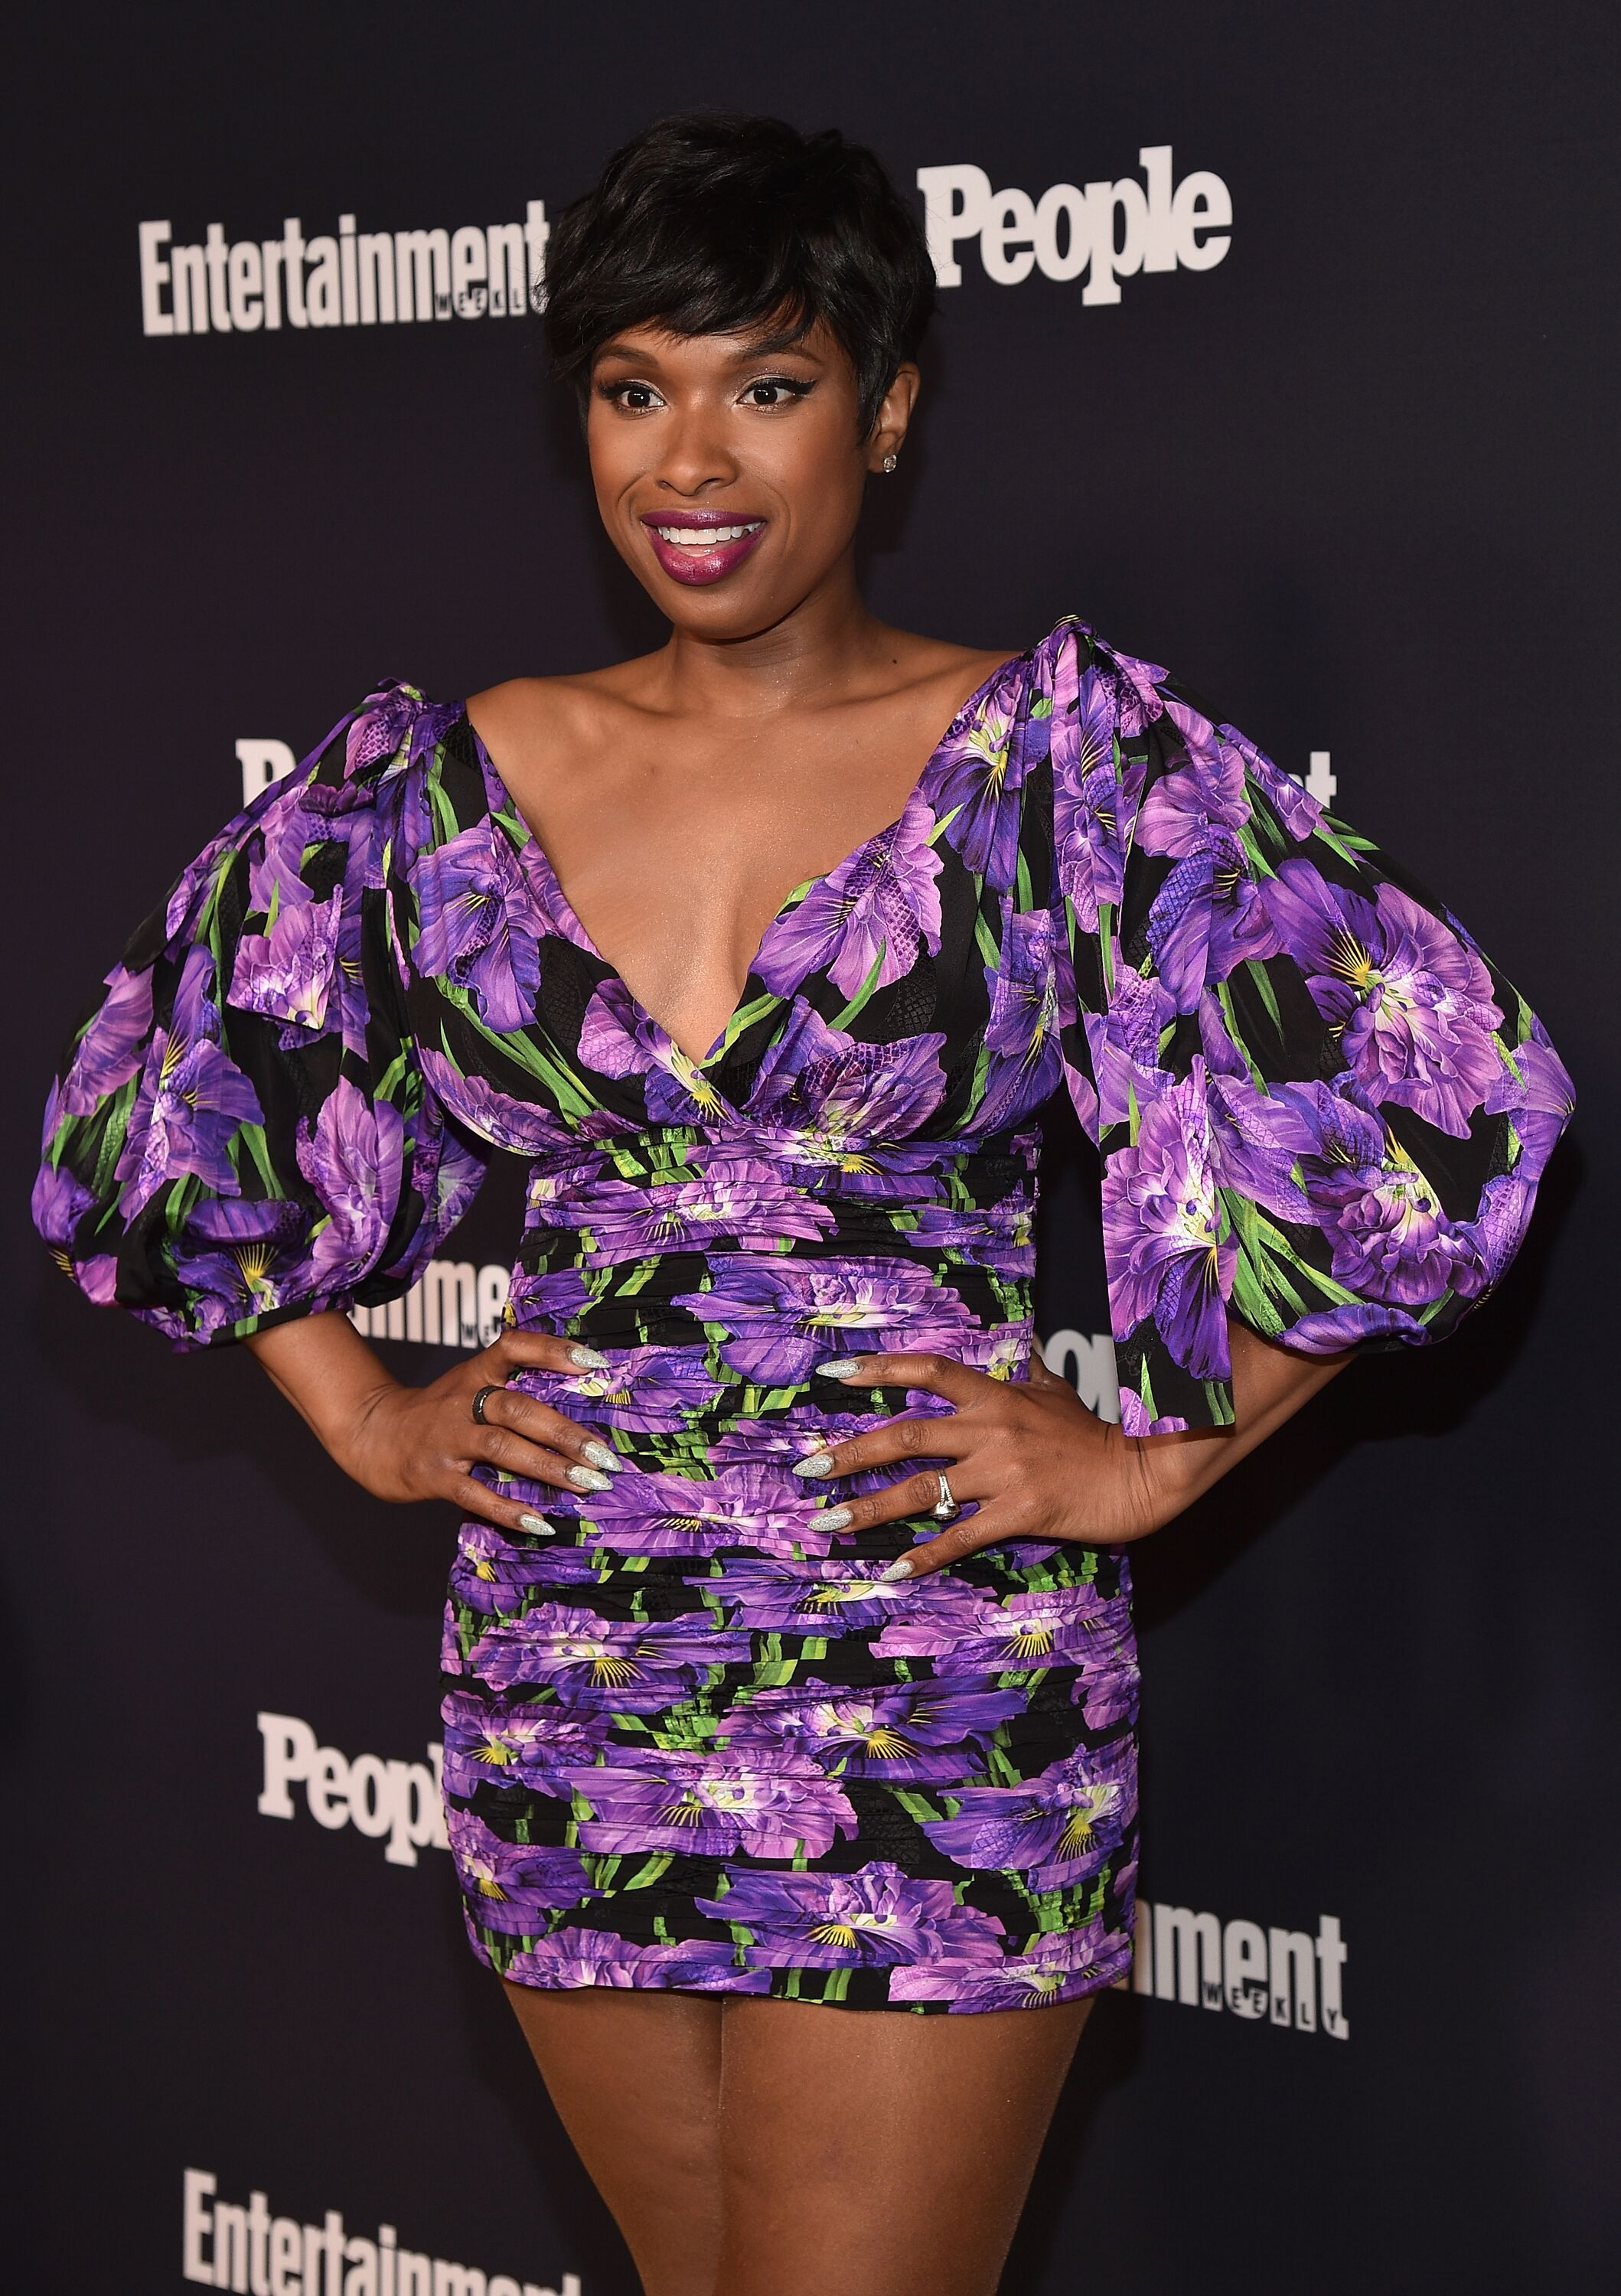 Jennifer Hudson attends the Entertainment Weekly and PEOPLE Upfronts party presented by Netflix and Terra Chips at Second Floor on May 15, 2017 in New York City. | Photo: Getty Images